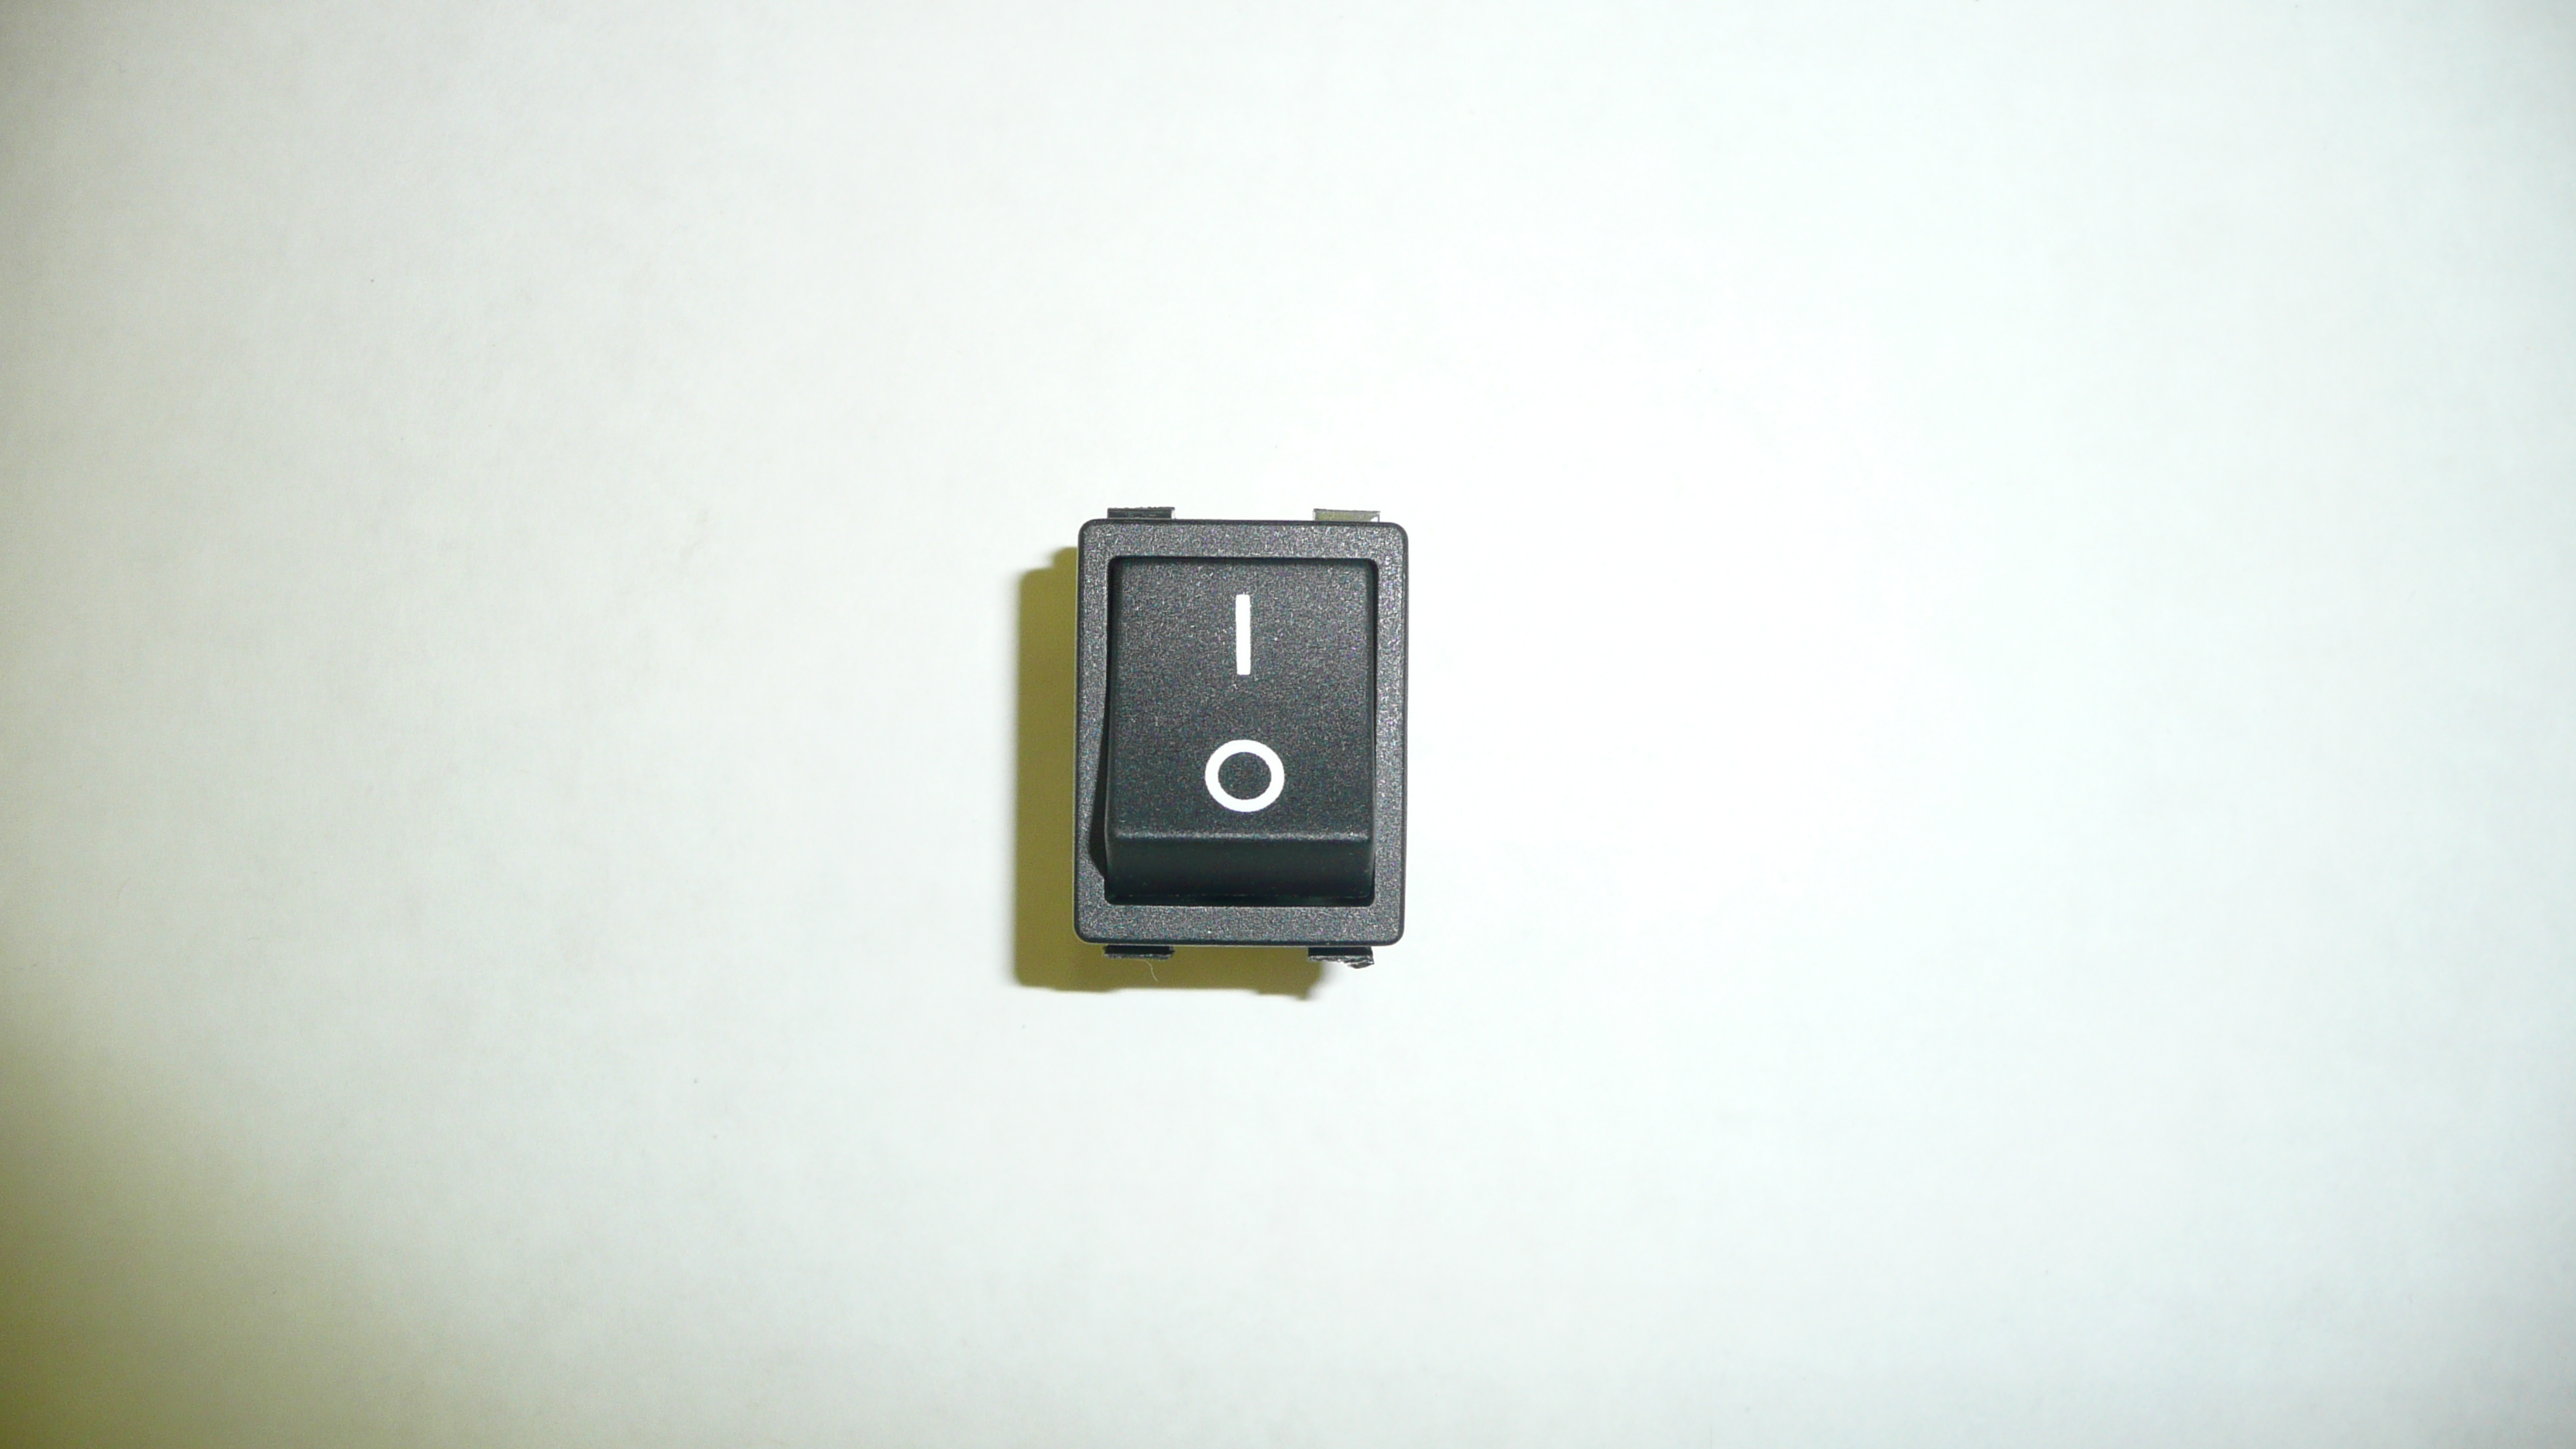 Rocker Switch 15 Amp | EconoHeat.com